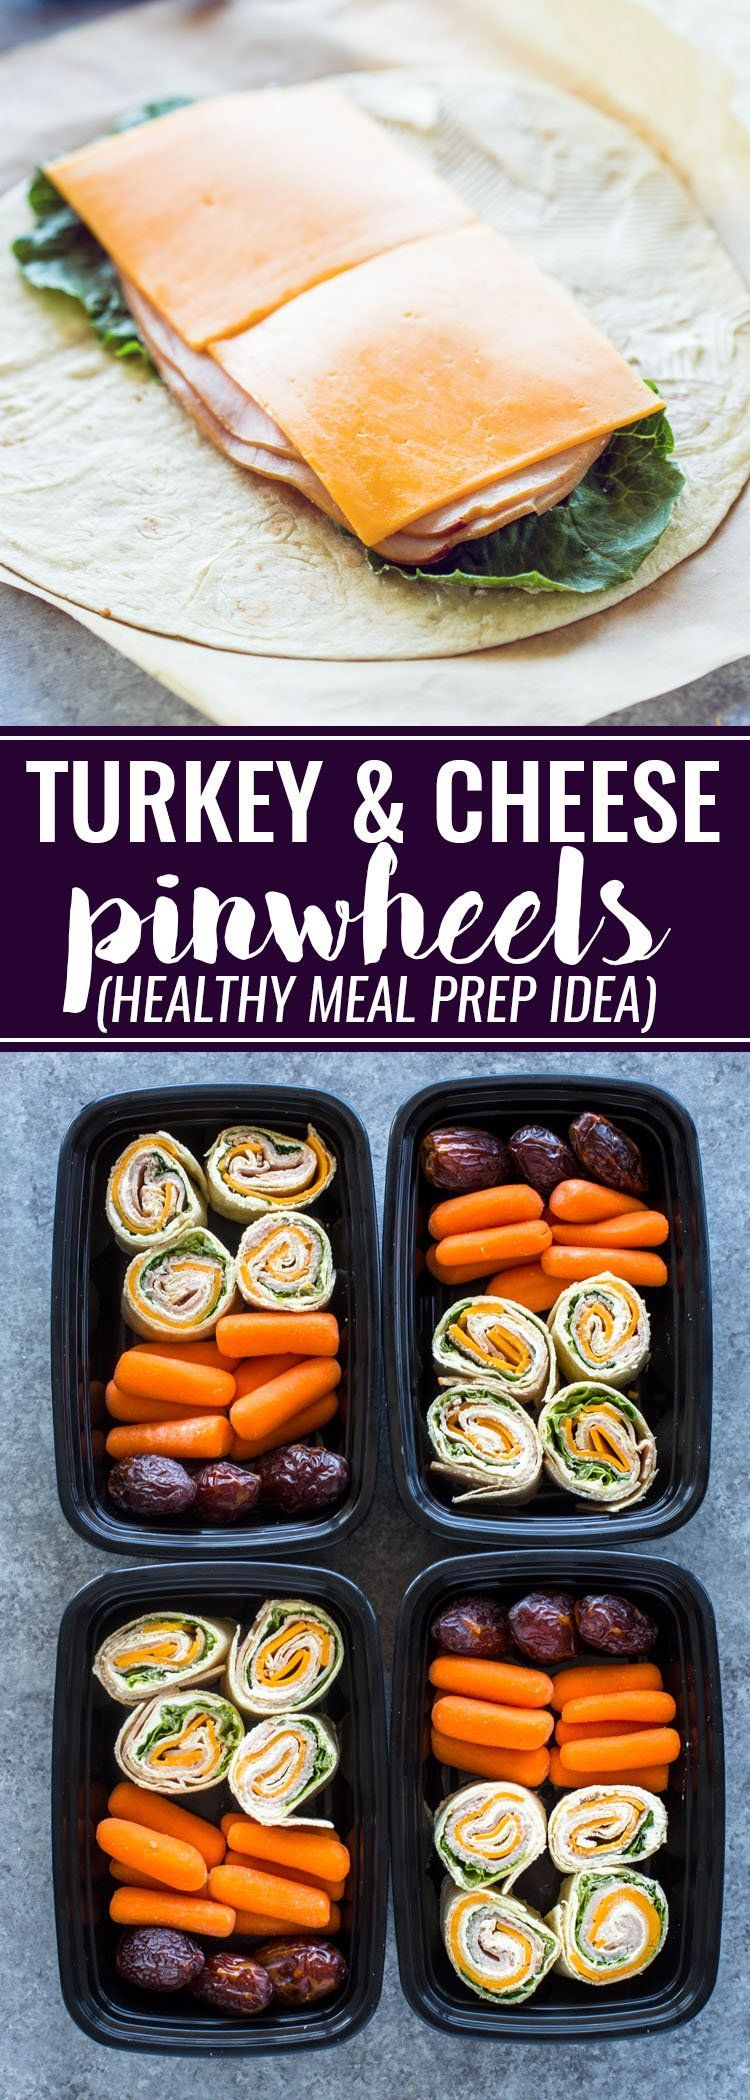 and Cheese Pinwheels (Meal-Prep Idea) Turkey, cheese, lettuce and cream cheese rolled up in tortillas and cut into bite size pinwheels. These little snacks are super quick and easy to make and are perfect as a snack or a lunch box meal…Turkey, cheese, lettuce and cream cheese rolled up in tortillas and cut into bite size pinwheels. These little snacks are su...